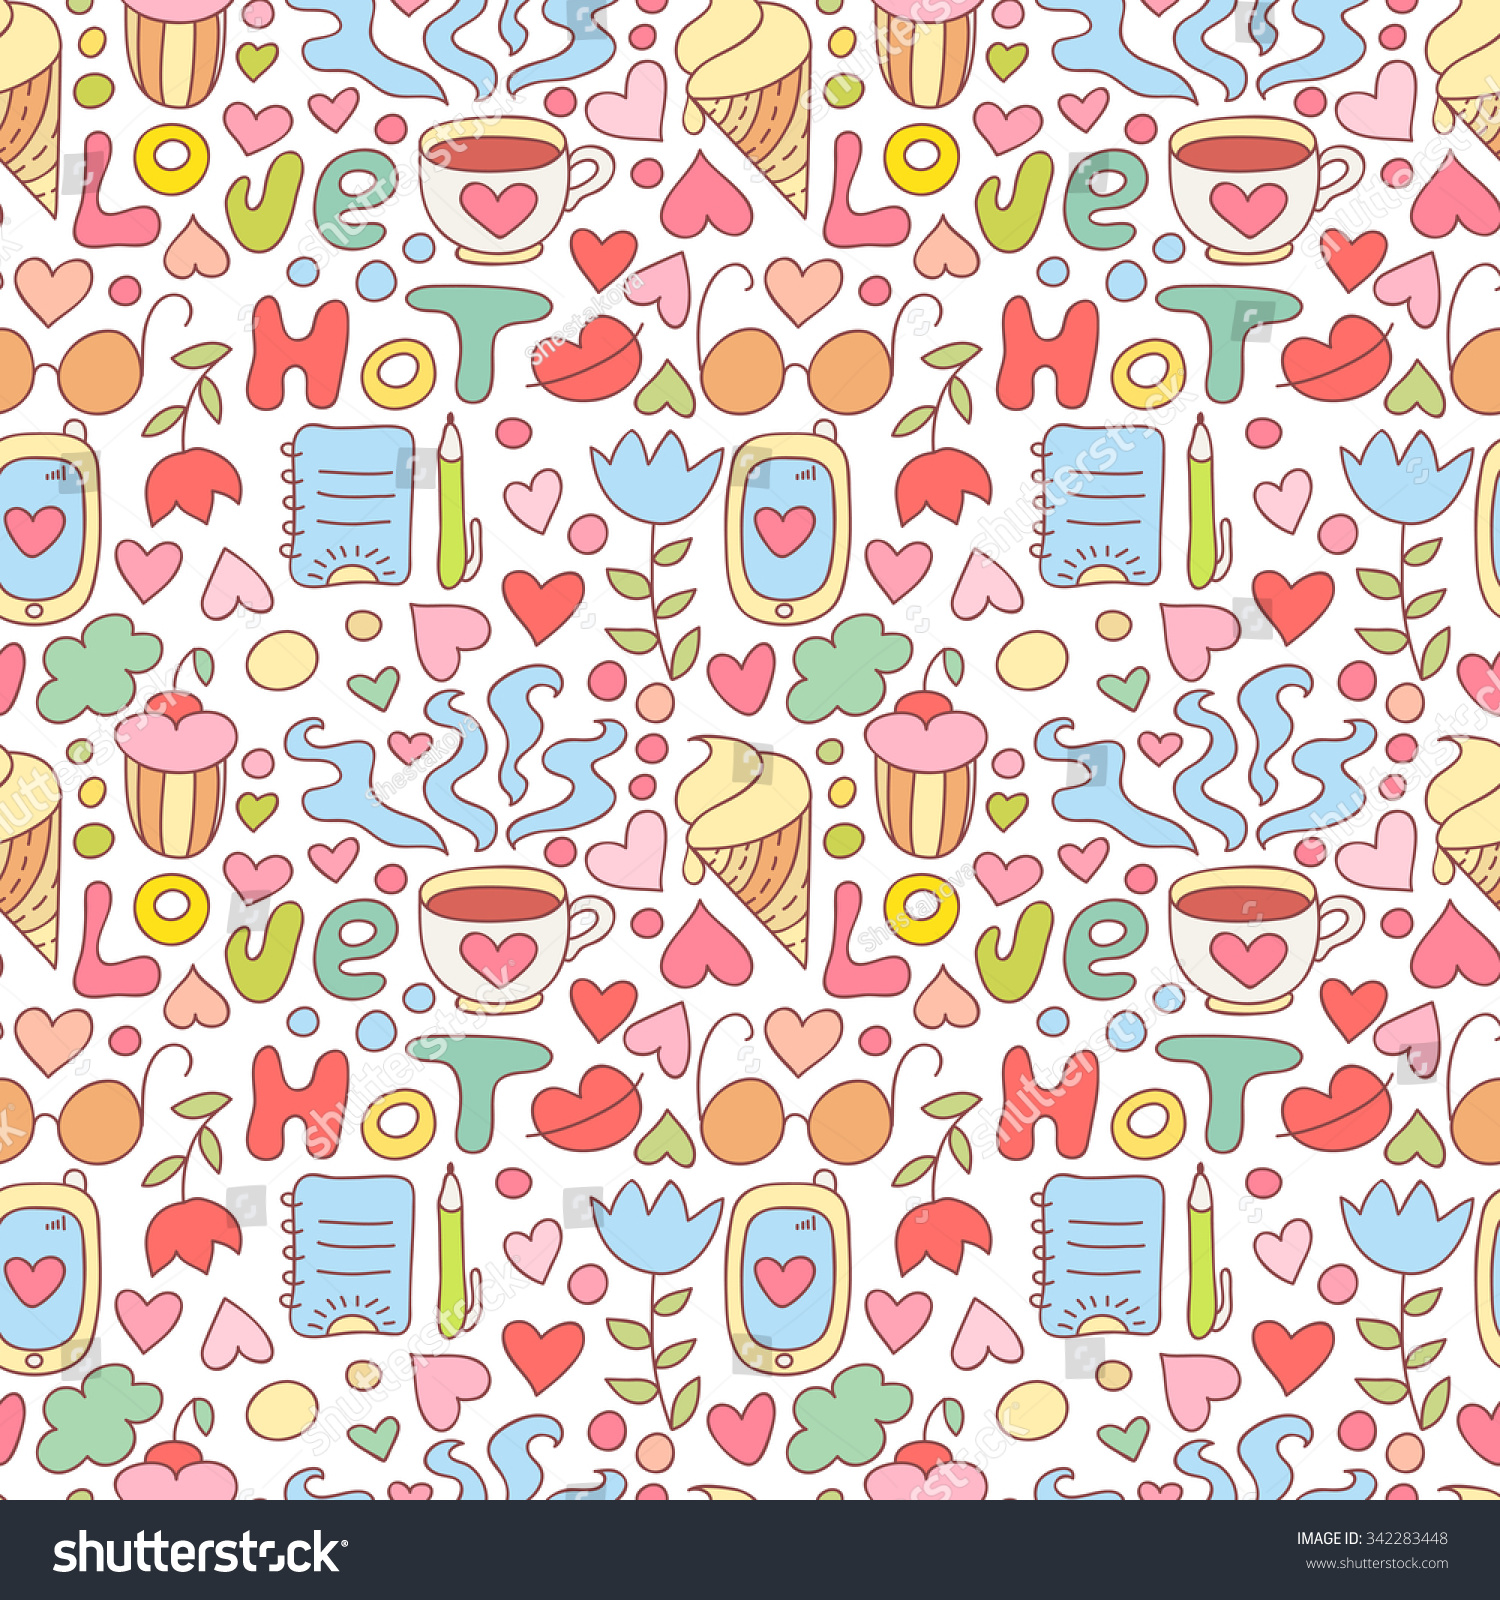 seamless doodle coffee pattern - photo #24